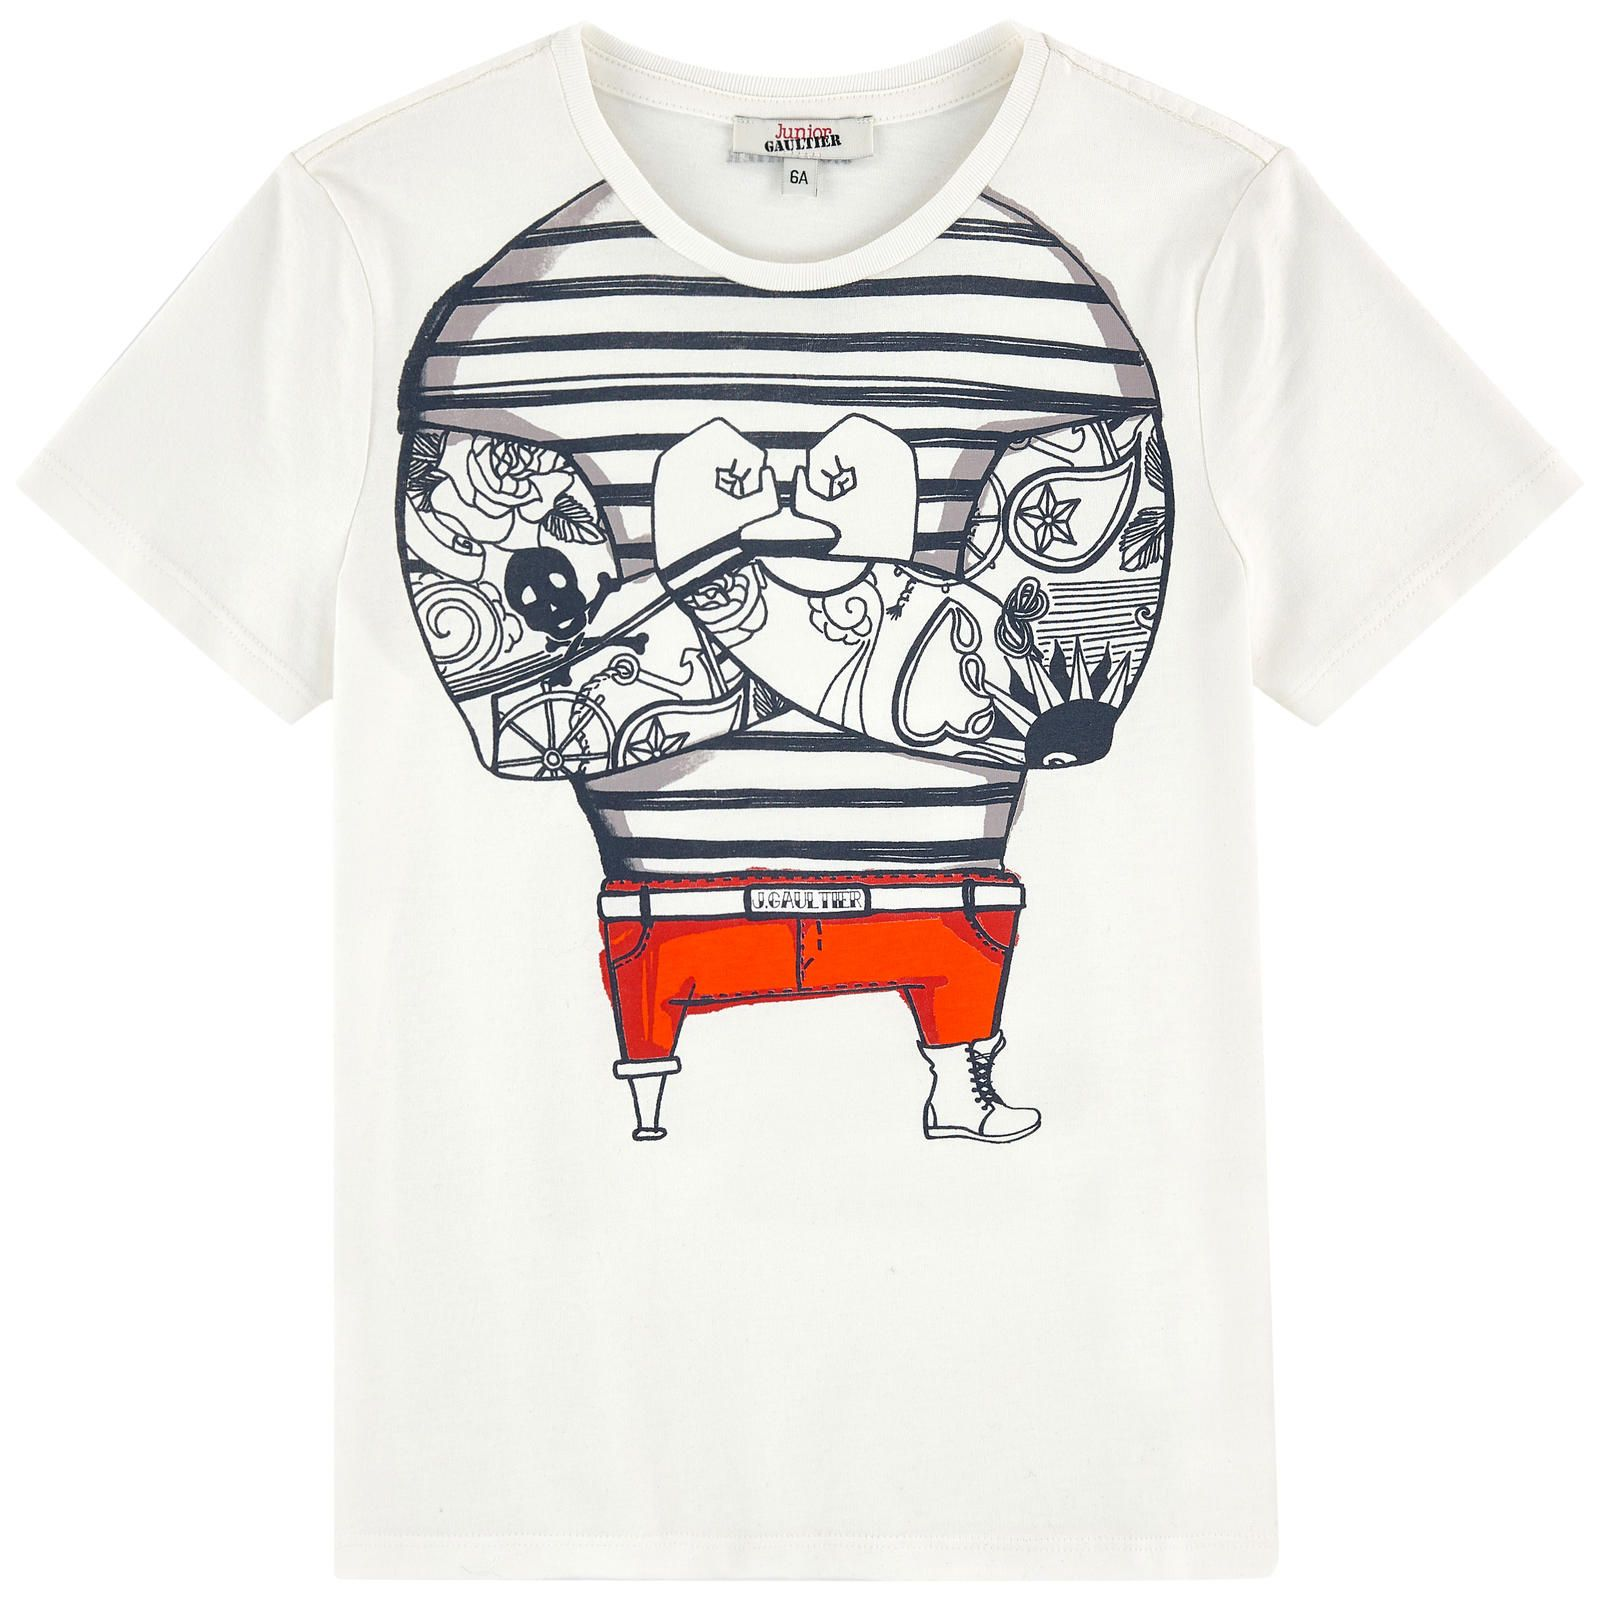 1d27751f6b036 Graphic T-shirt Junior Gaultier for boys